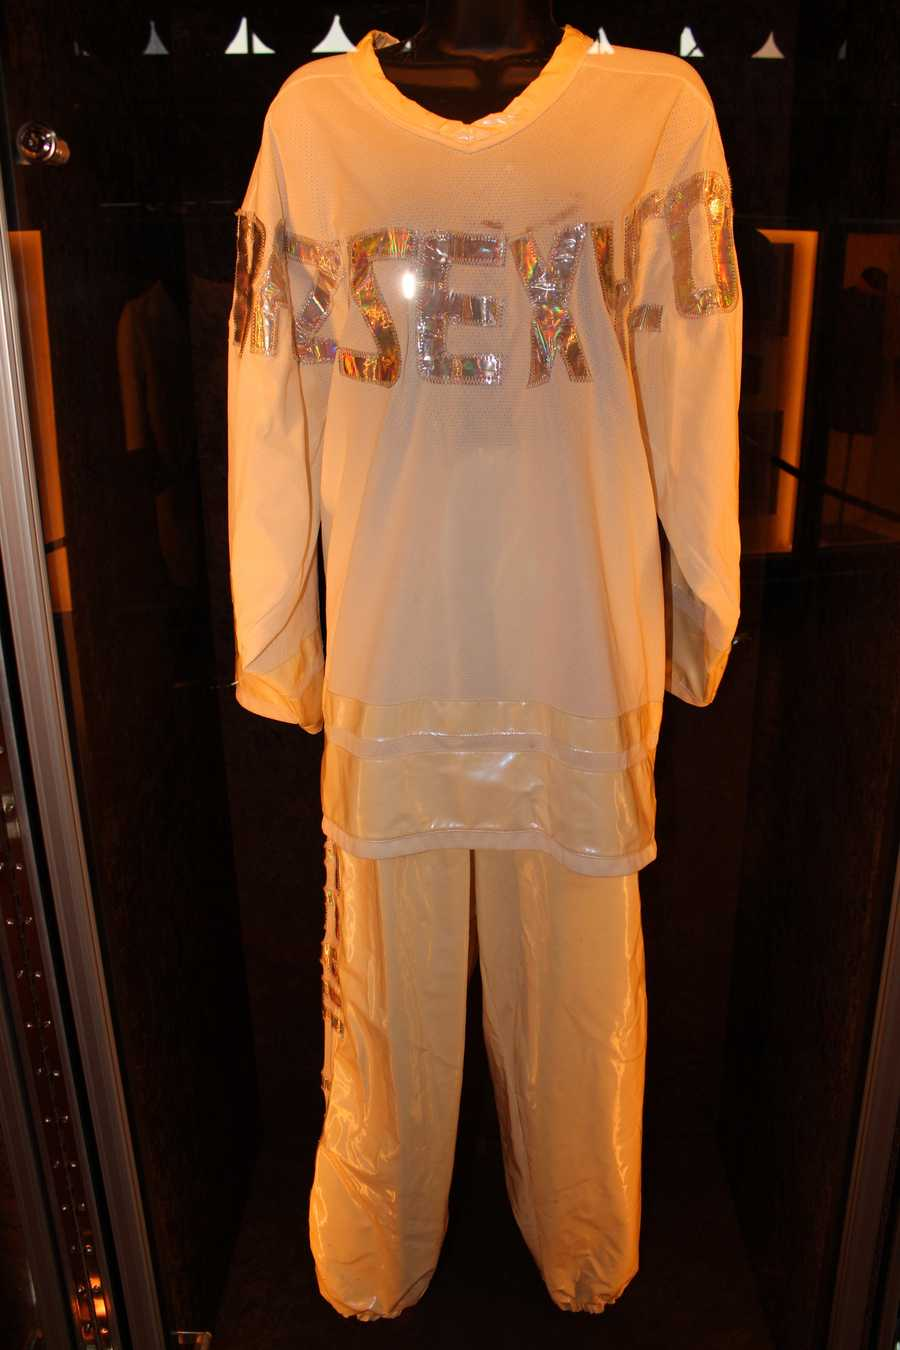 """This outfit was worn by Lisa """"Left Eye"""" Lopes during TLC's CrazySexyCool tour"""